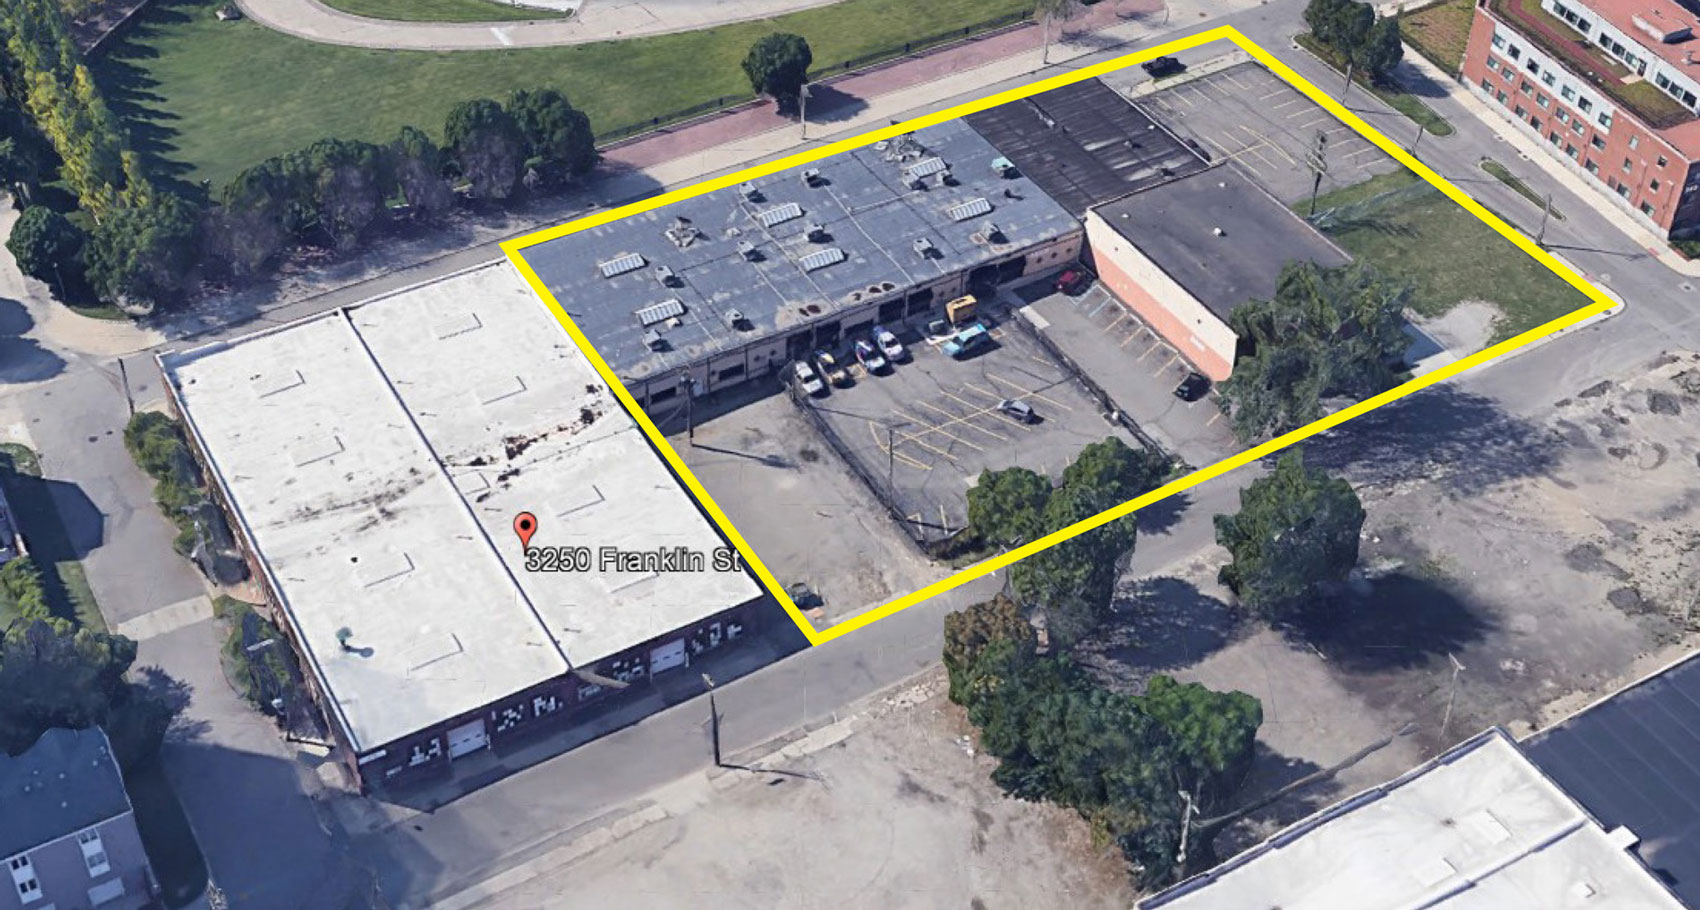 3250 Franklin St, Detroit, Michigan 48207, ,Multi-Use,For Sale or Lease,3250 Franklin St,1012